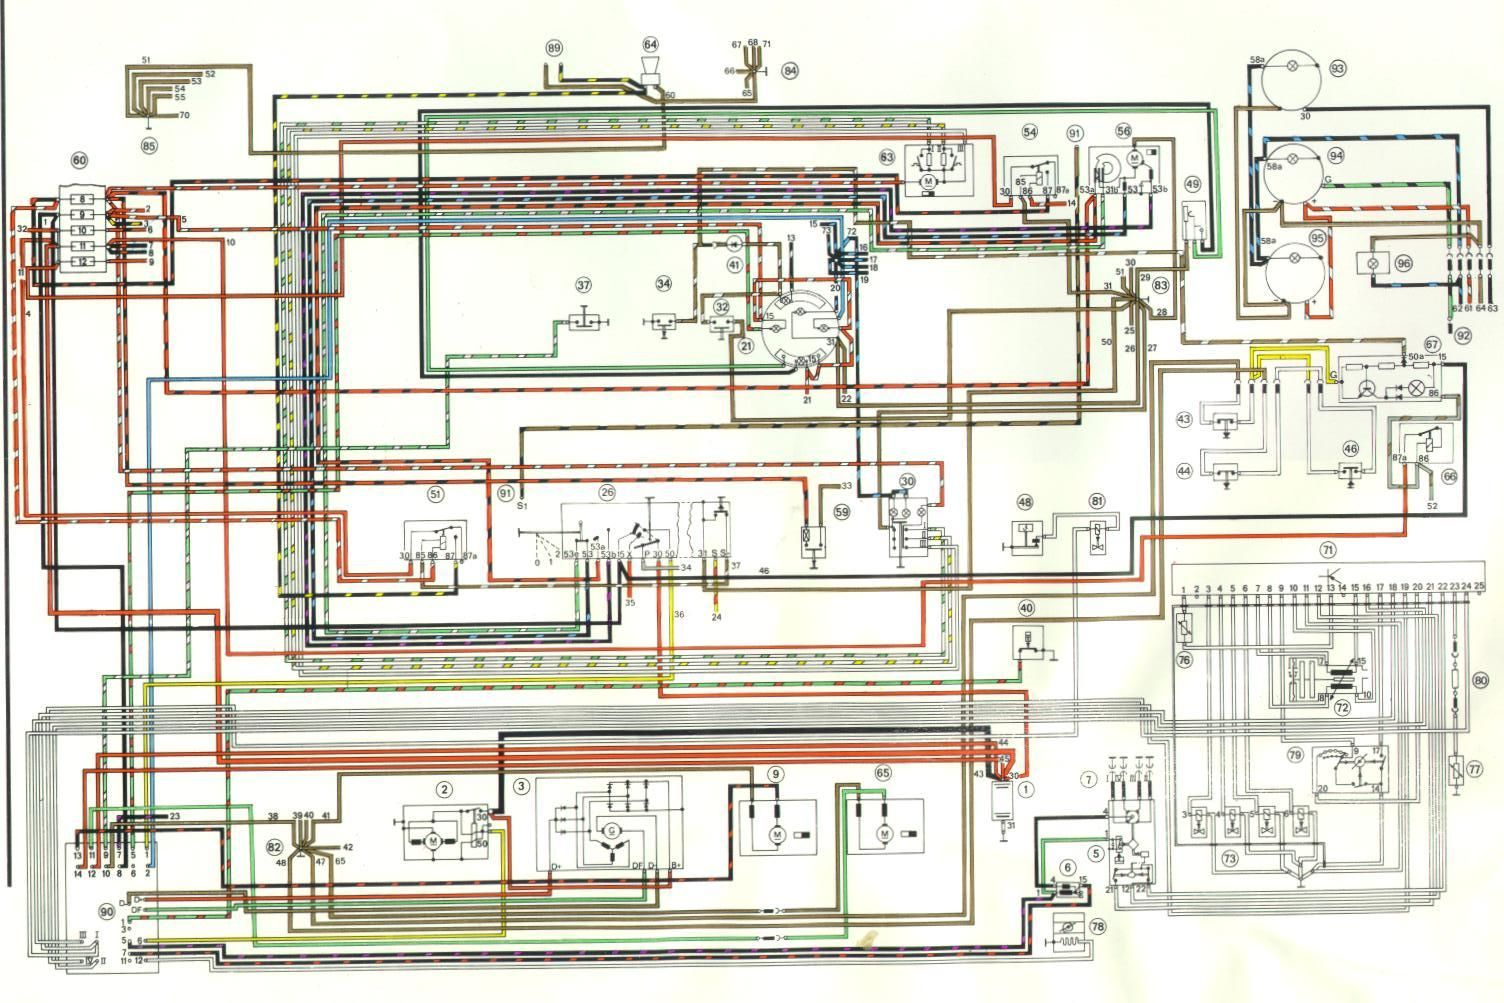 73 914 Porsche Porsche 914 Electrical Diagrams Porsche 914 Porsche Electrical Diagram